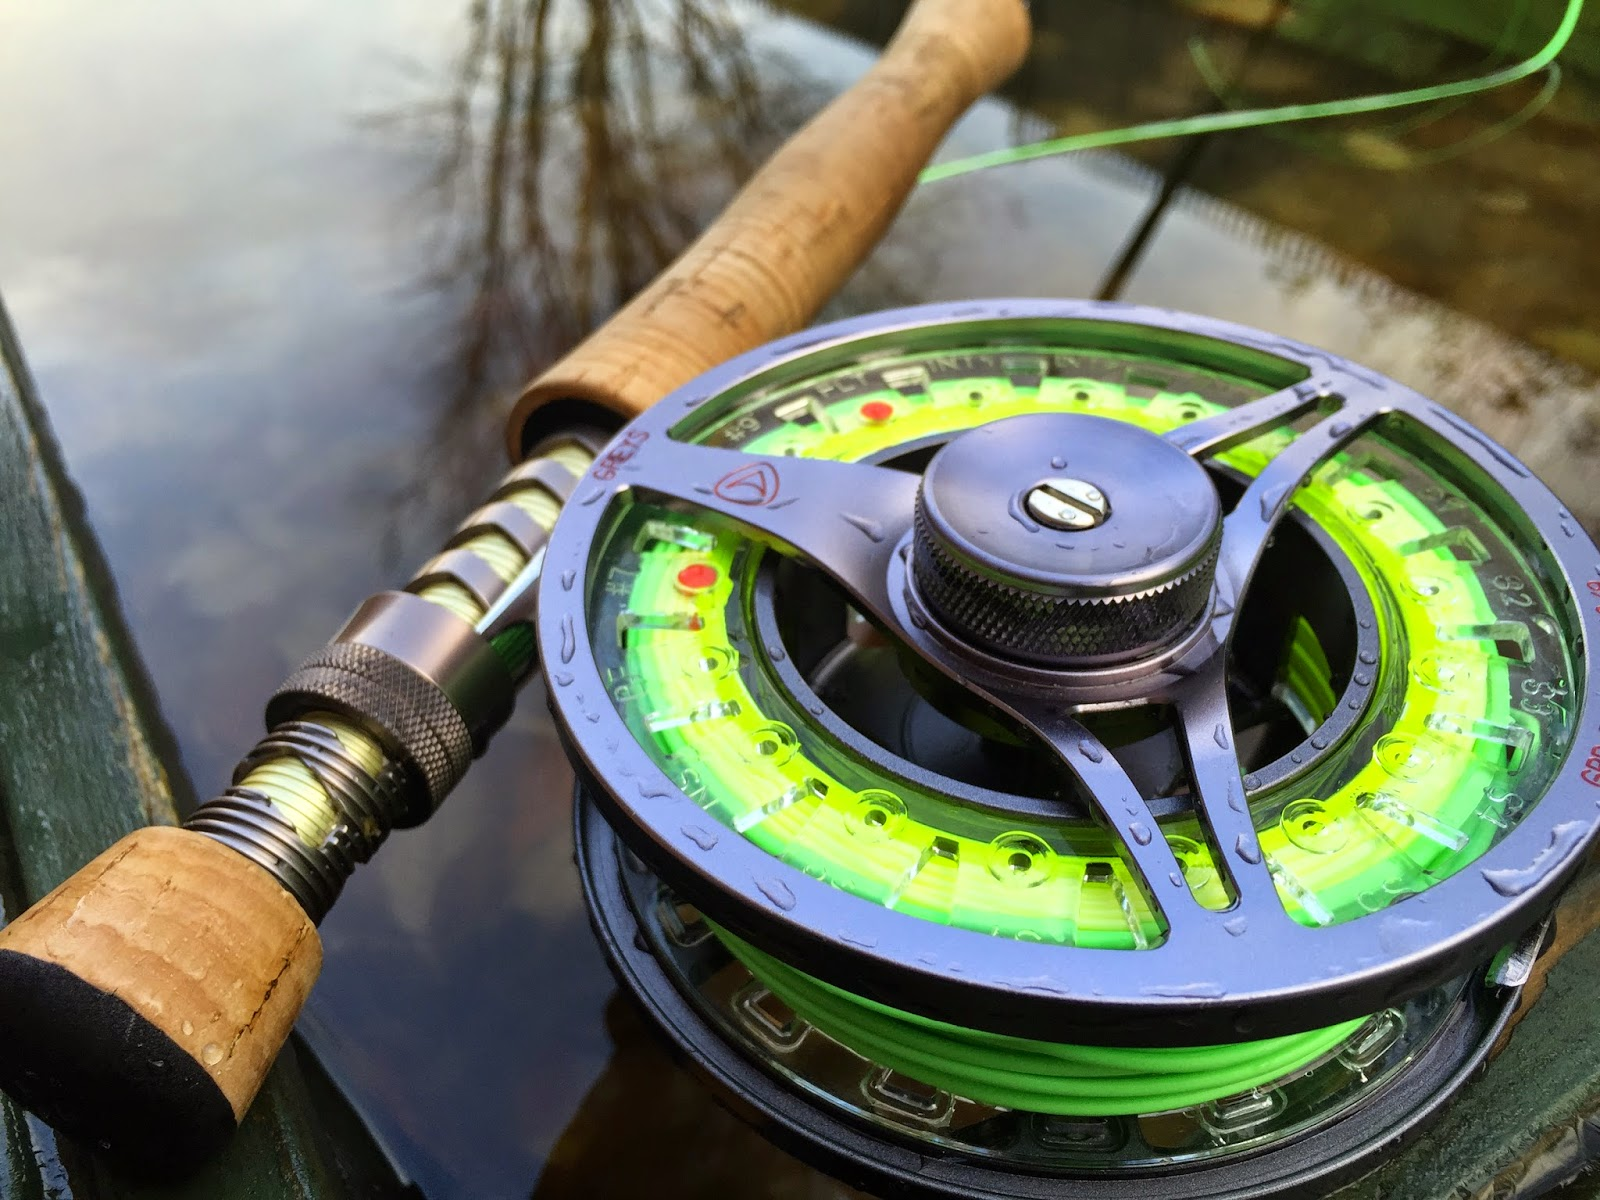 First look the new greys gts700 fly reel for Best fly fishing reels